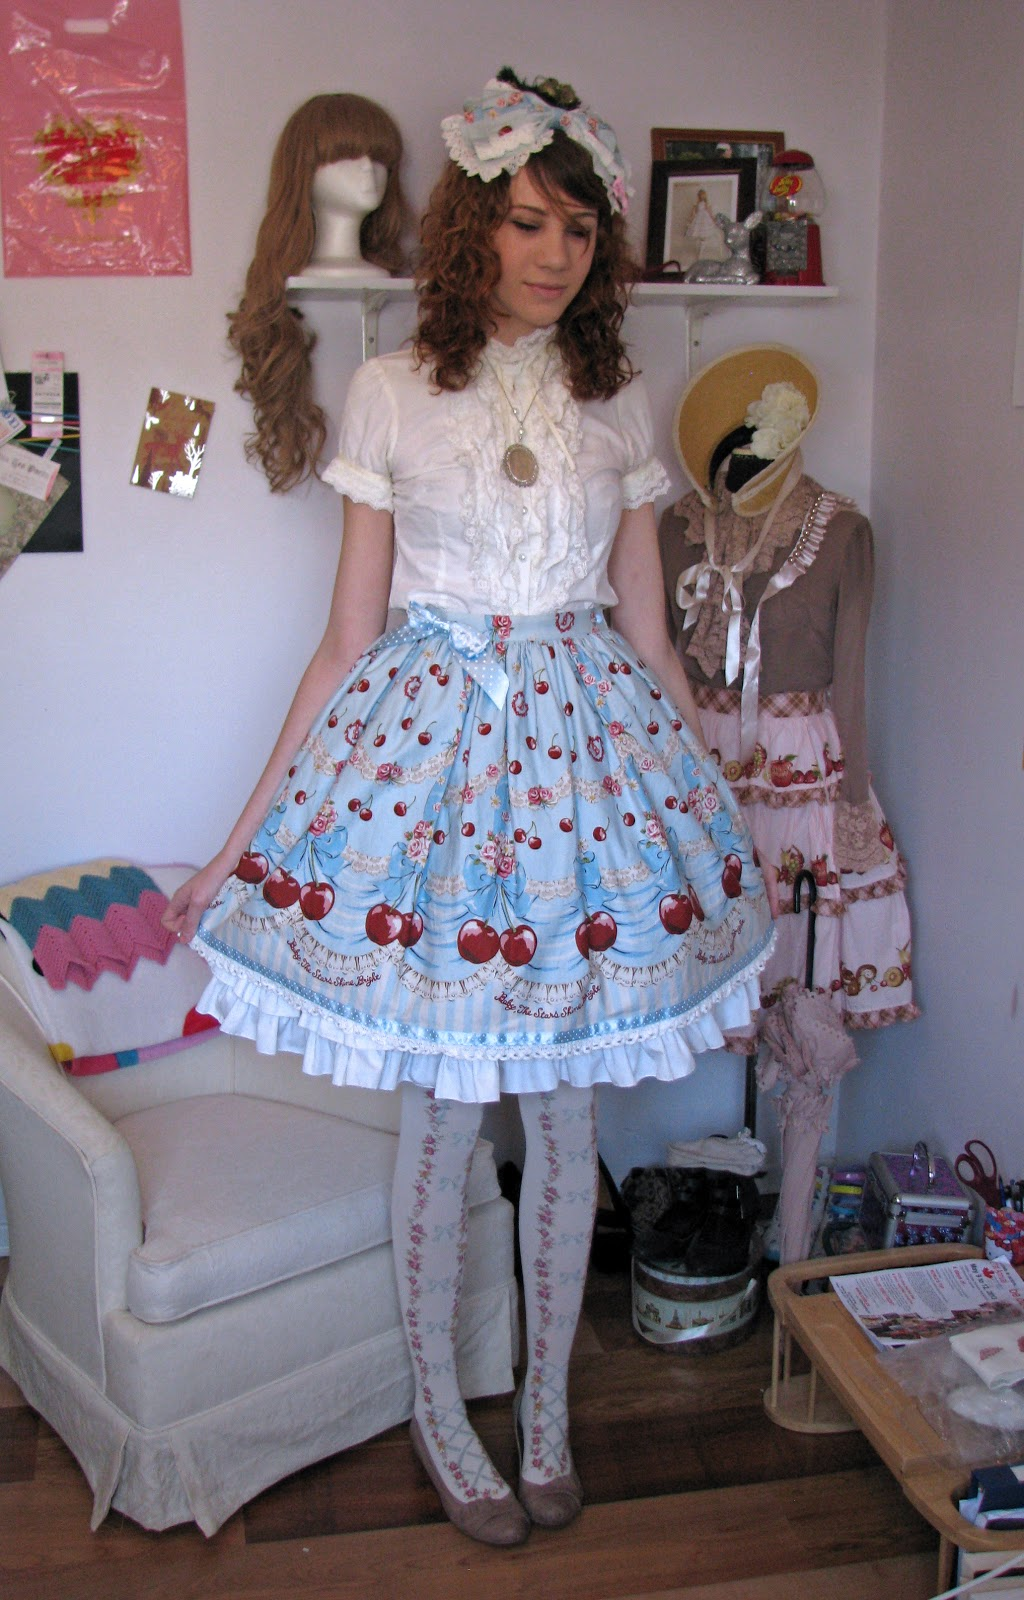 12 year lolita porn Zoe wearing one of her Sweet Lolita outfits.